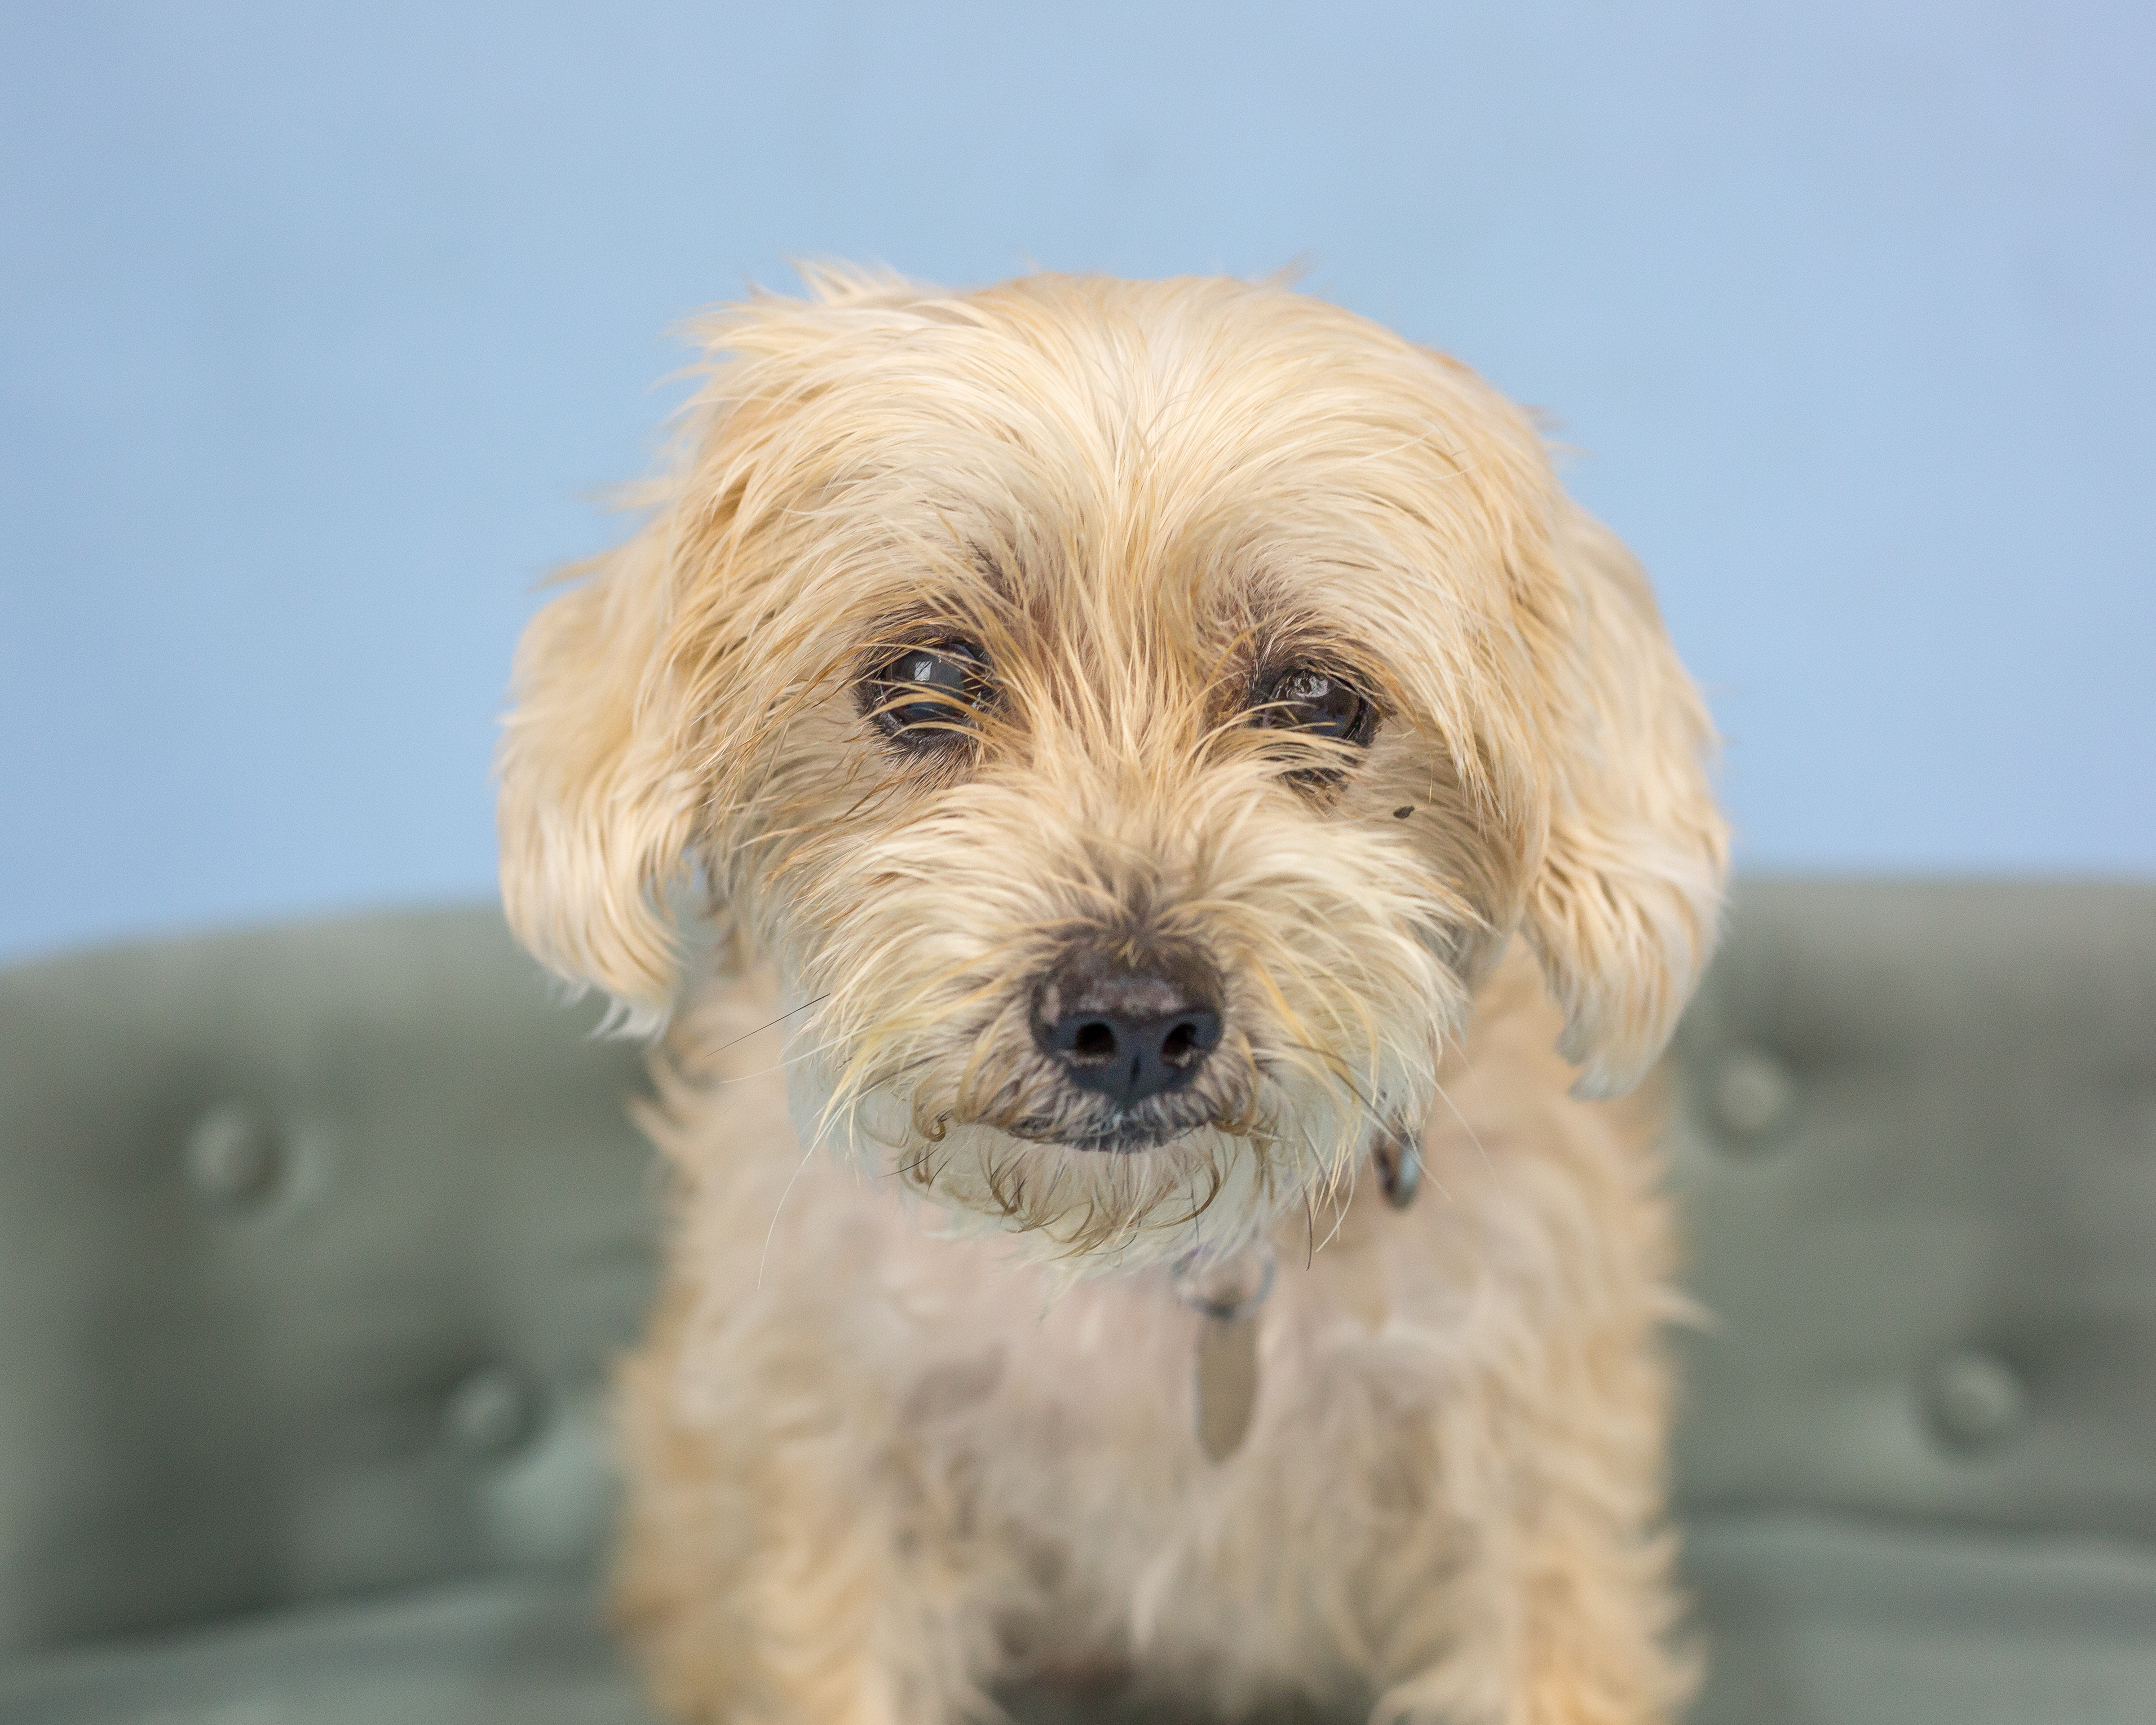 Hello, my name is Casey. I'm a delightful nine-year-old Maltese terrier mix hoping to start a new adventure with you! I've done well living with mellow dogs before, and older kids will be a good match for me so I'm handled gently and given plenty of love and affection. I will give it back tenfold!